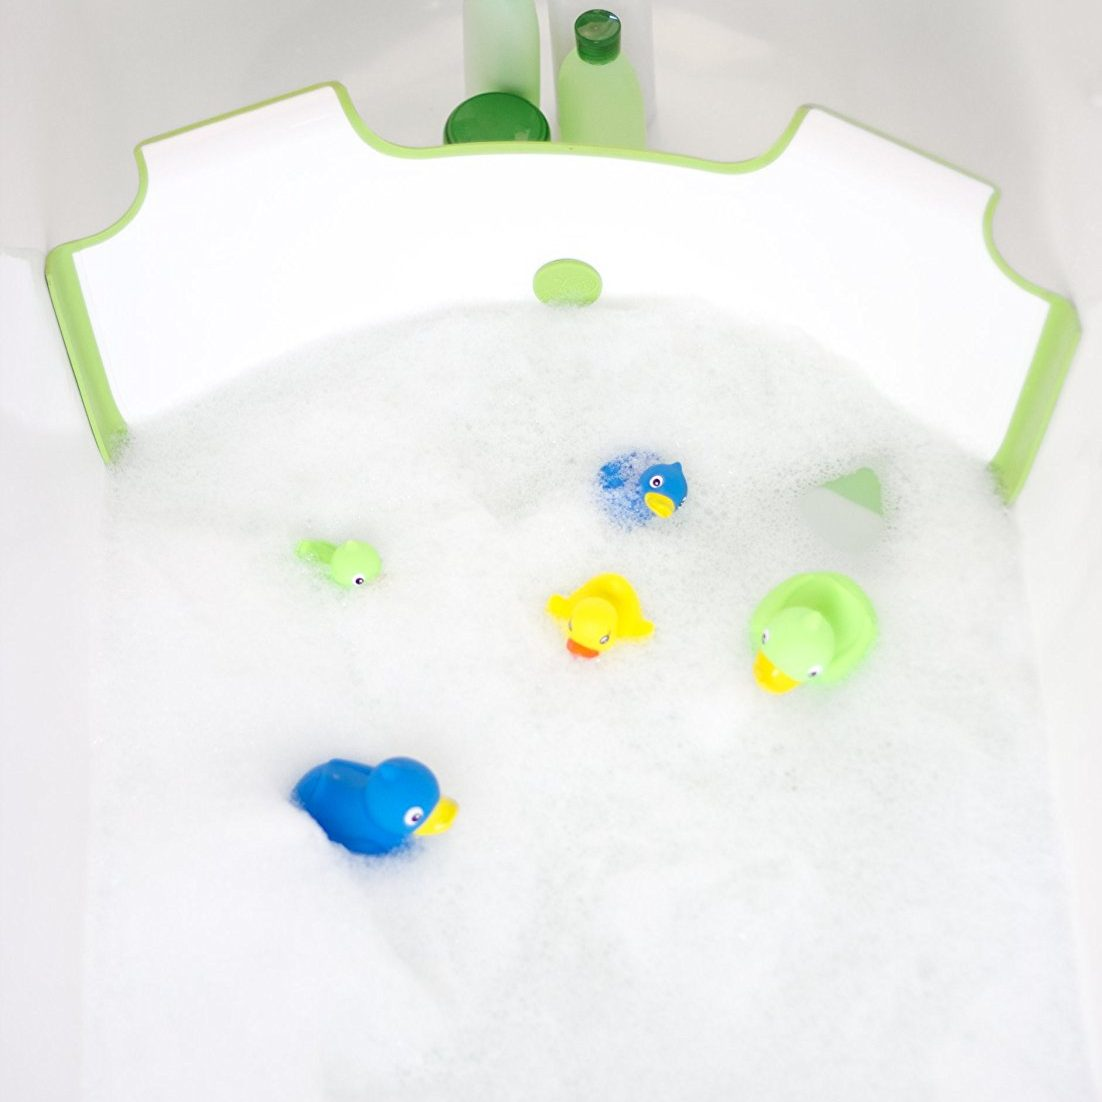 BabyDam bathwater barrier creates a small bath within your family tub